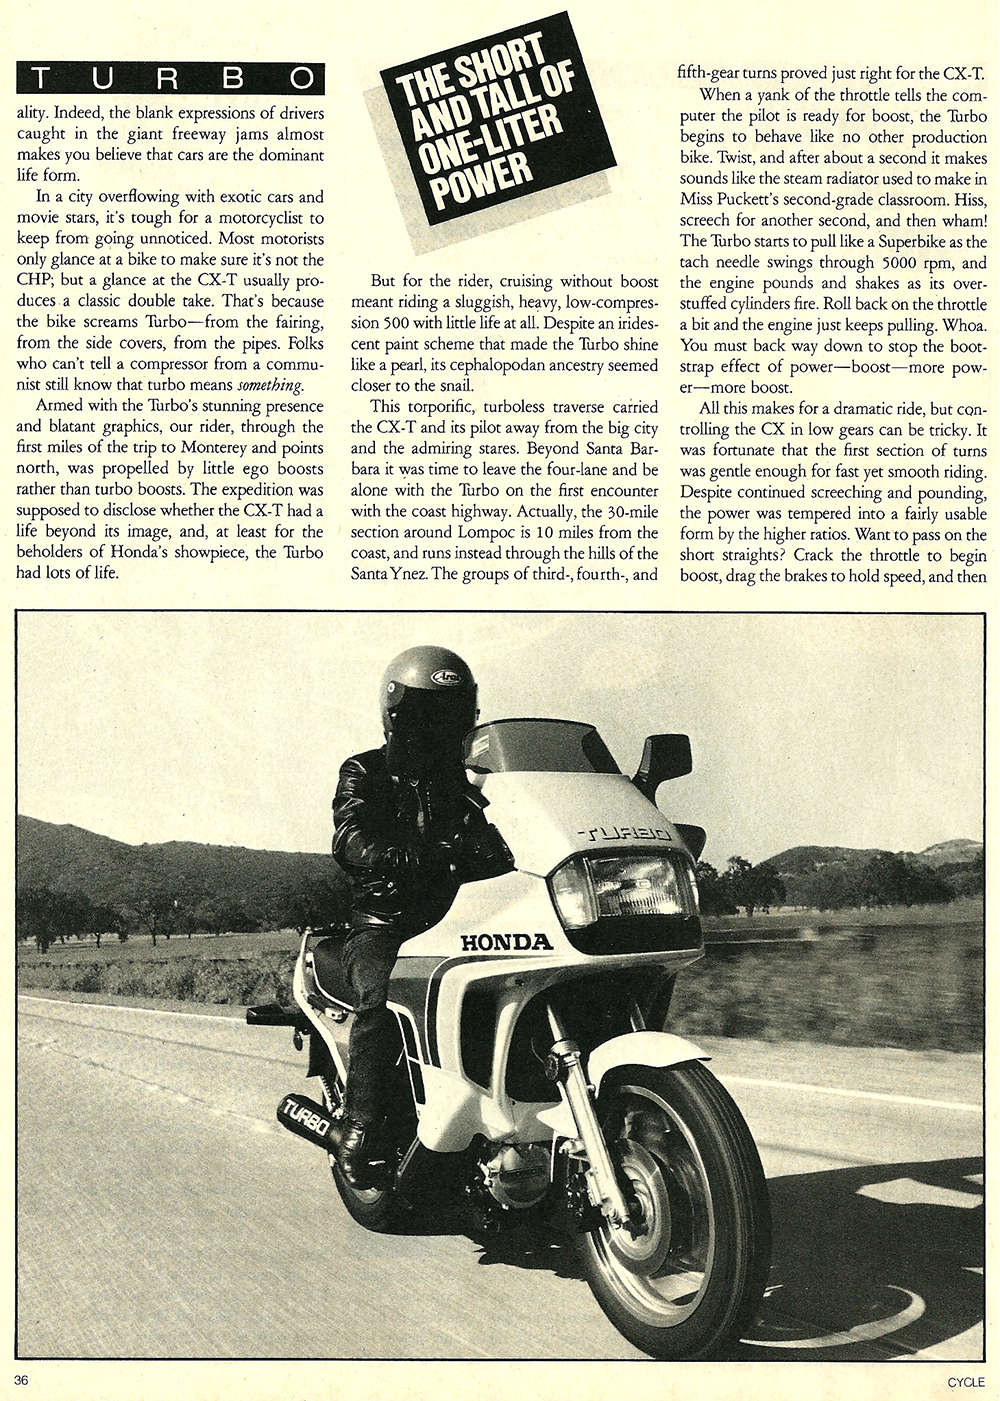 1982 Honda CBX vs CX 500 Turbo road test 06.jpg